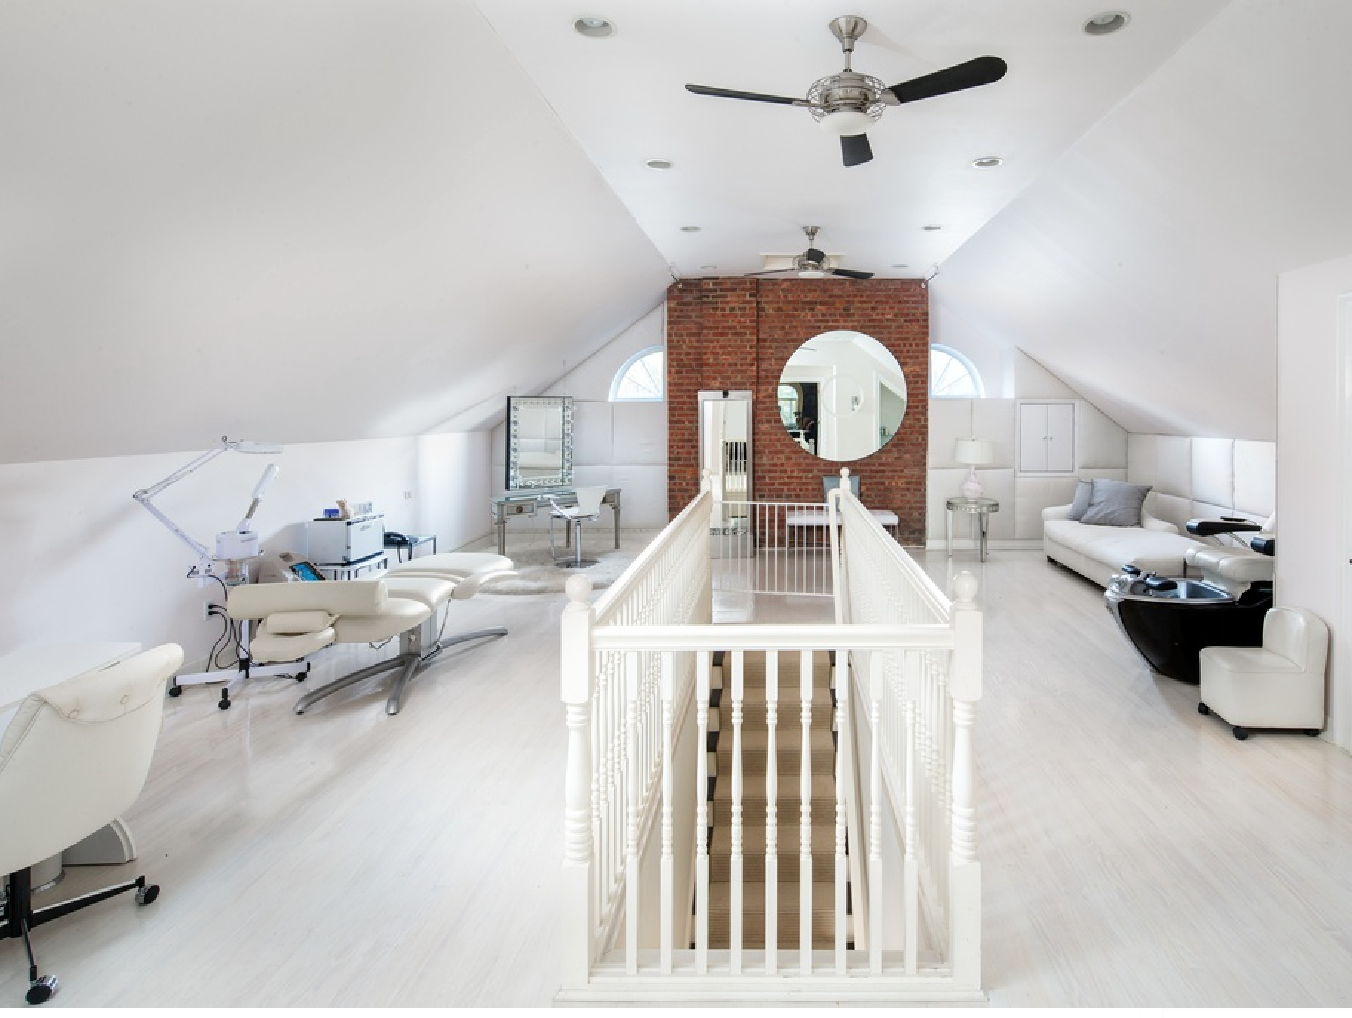 Anthony's 4,800-square-foot guest house was remodeled with an all-white motif.